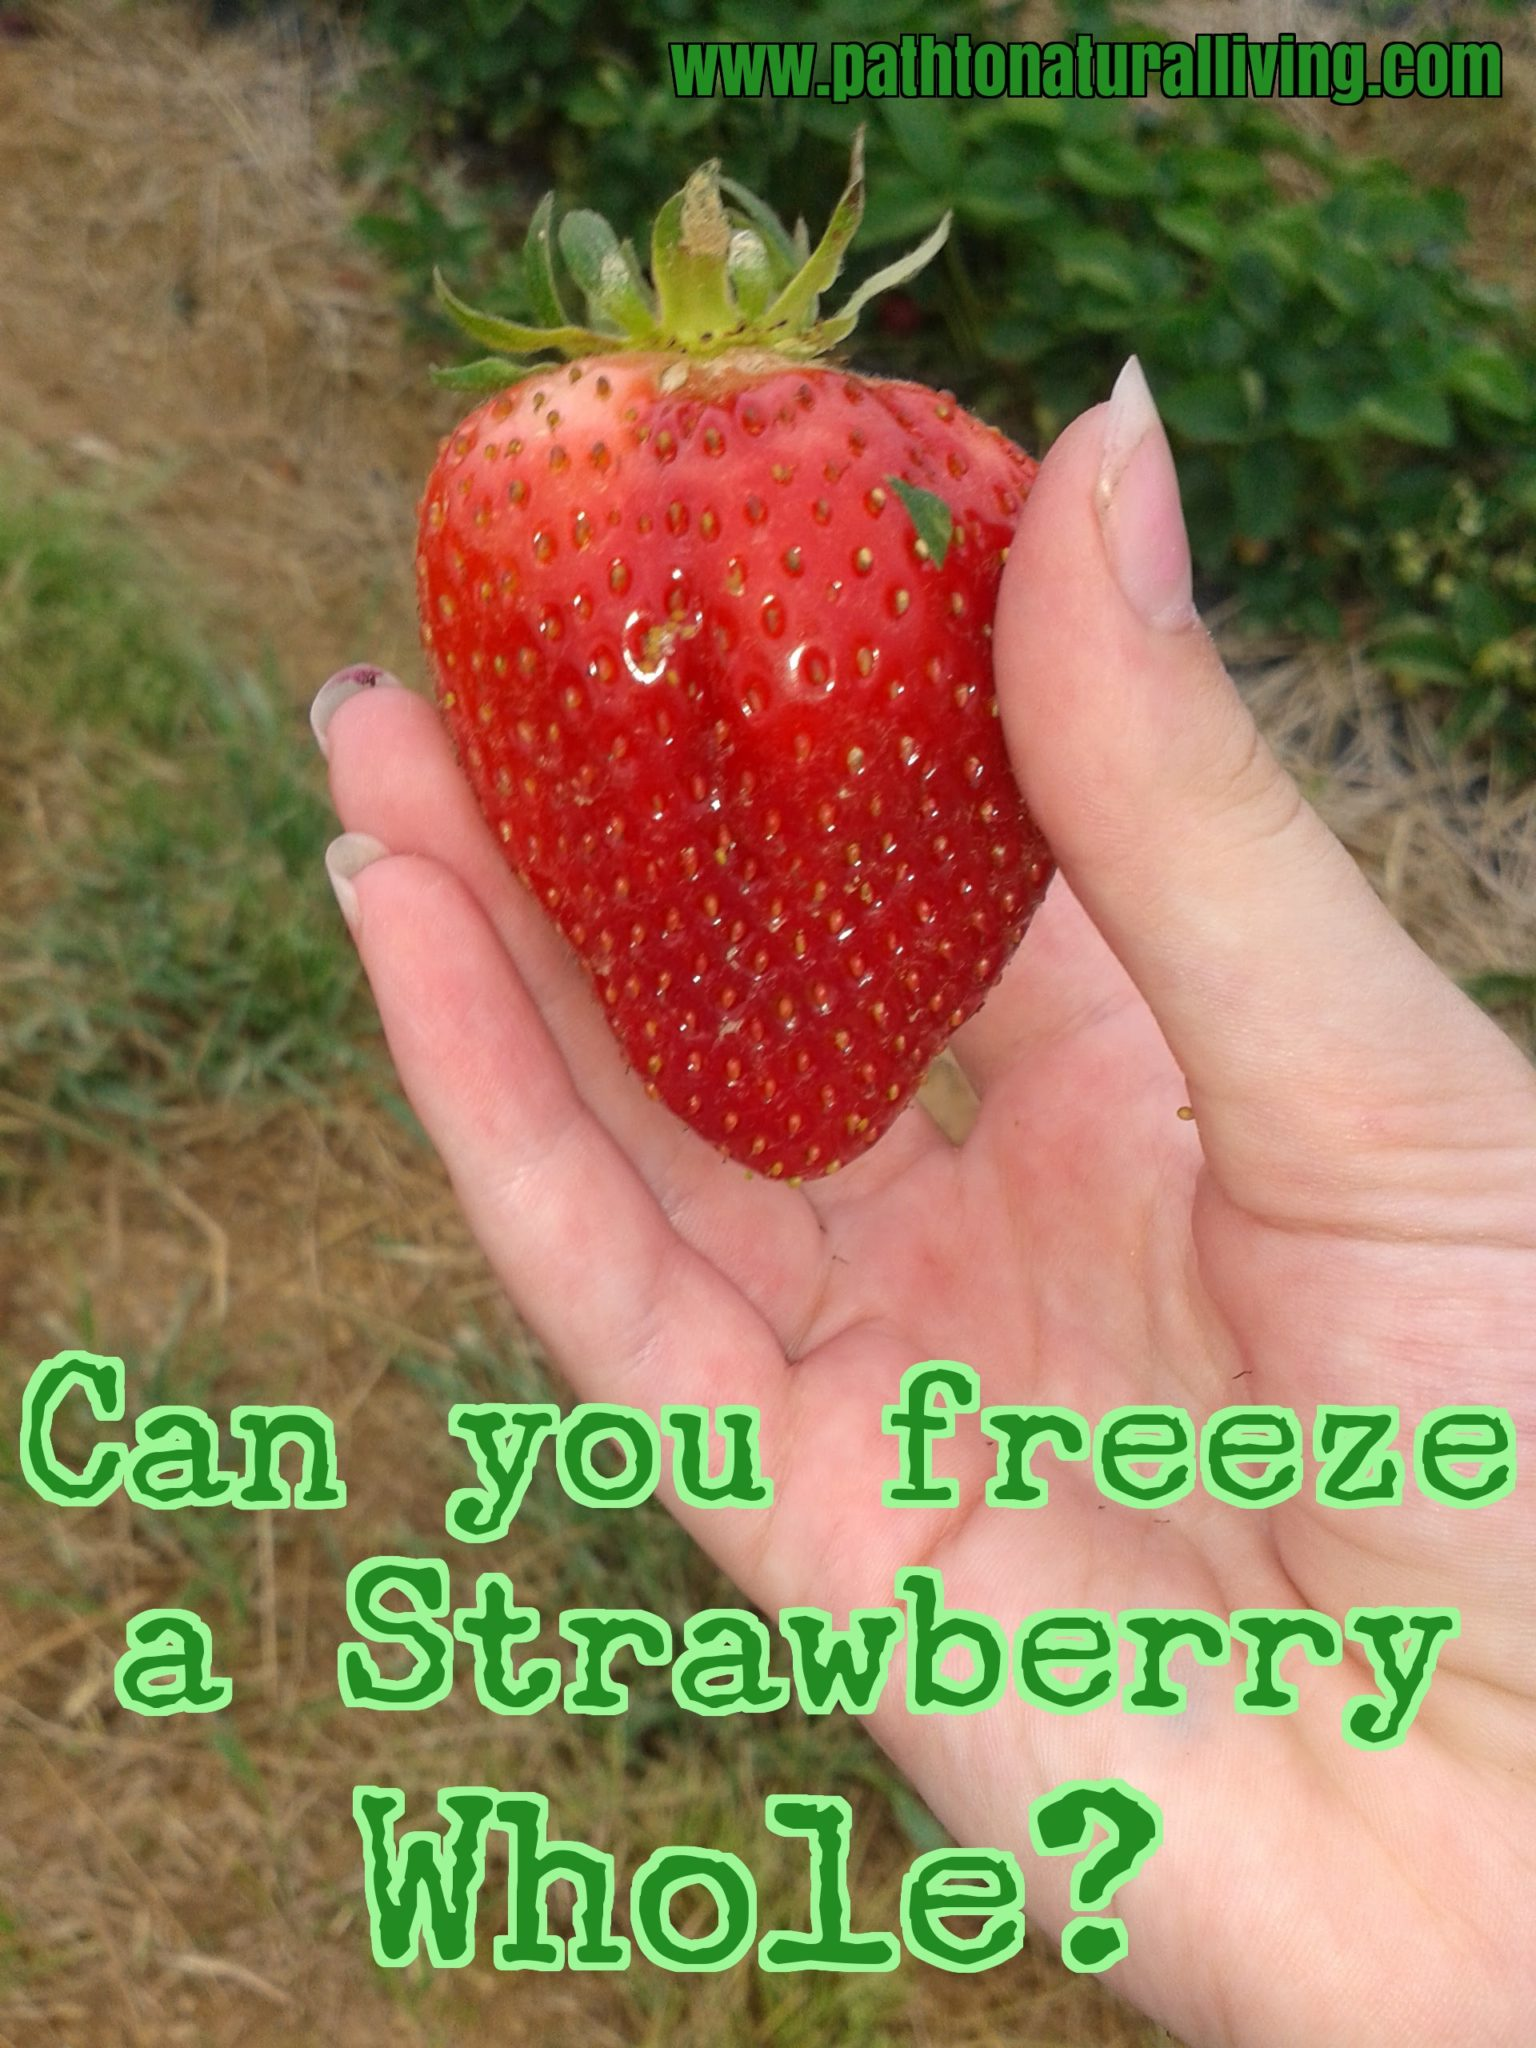 Can You Freeze Whole Strawberries?